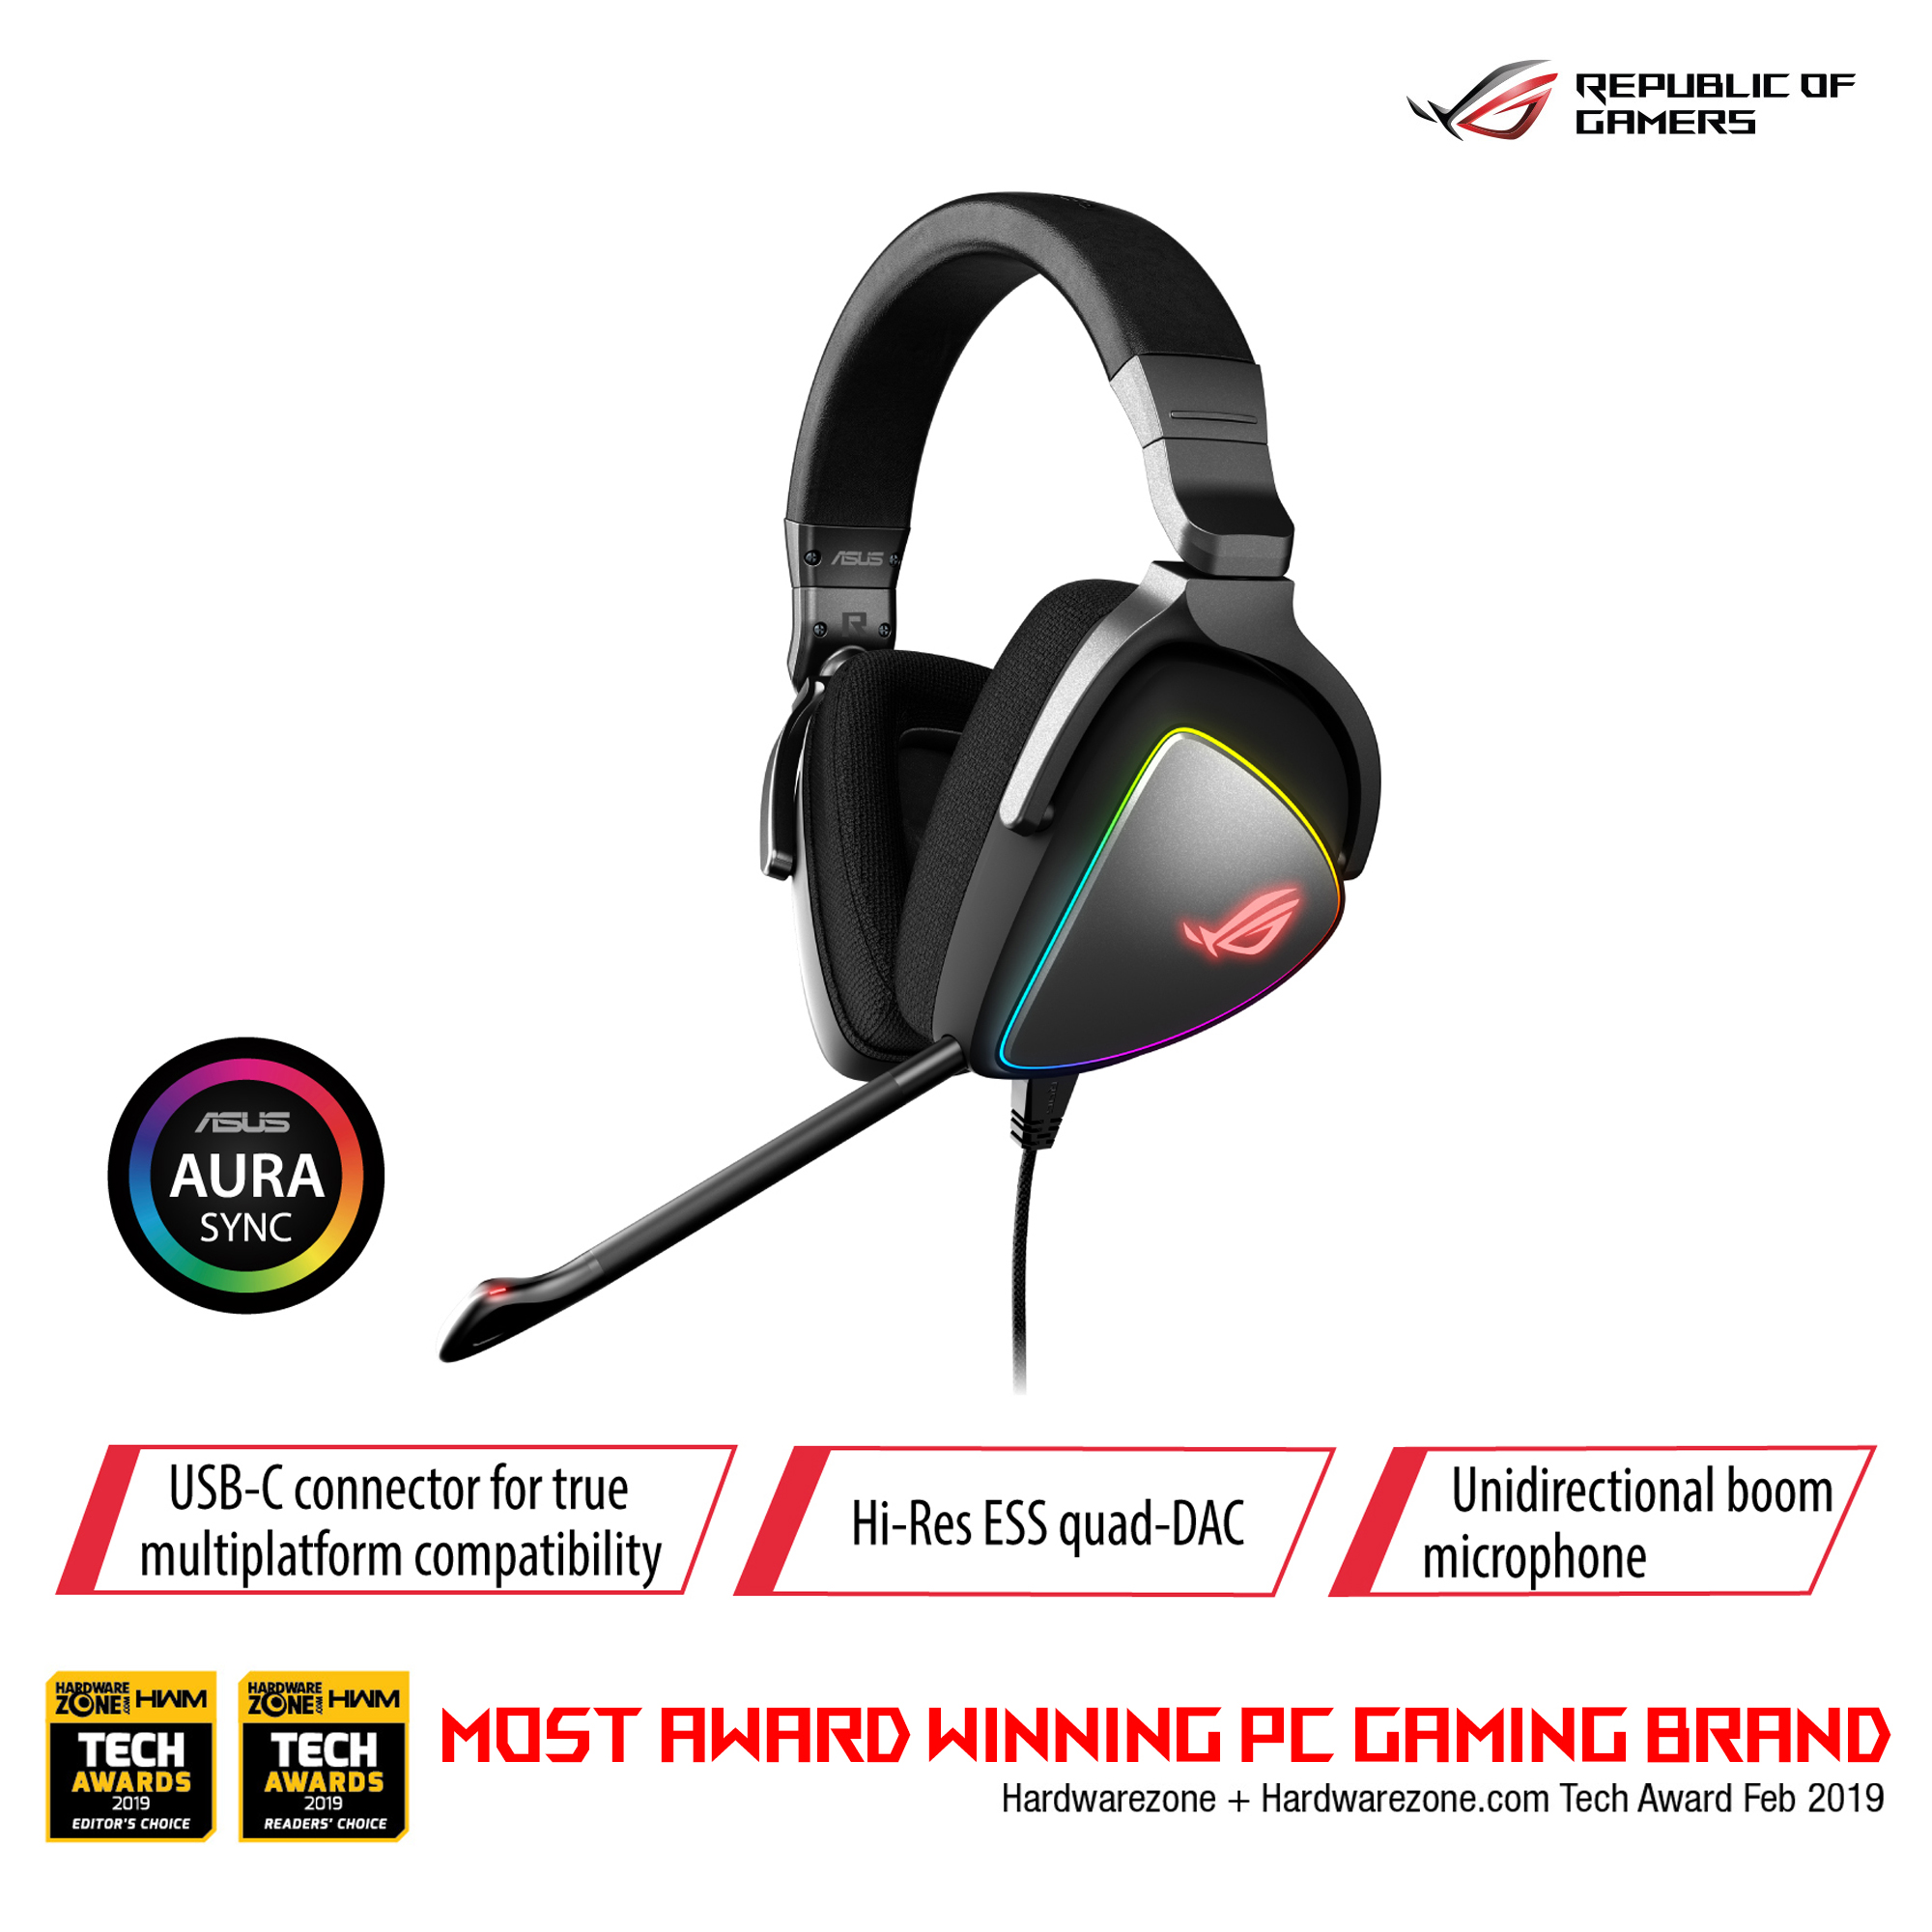 ASUS ROG Delta RGB gaming headset with Hi-Res ESS Quad-DAC, circular RGB lighting effect and USB-C connector for PCs, consoles and mobile gaming